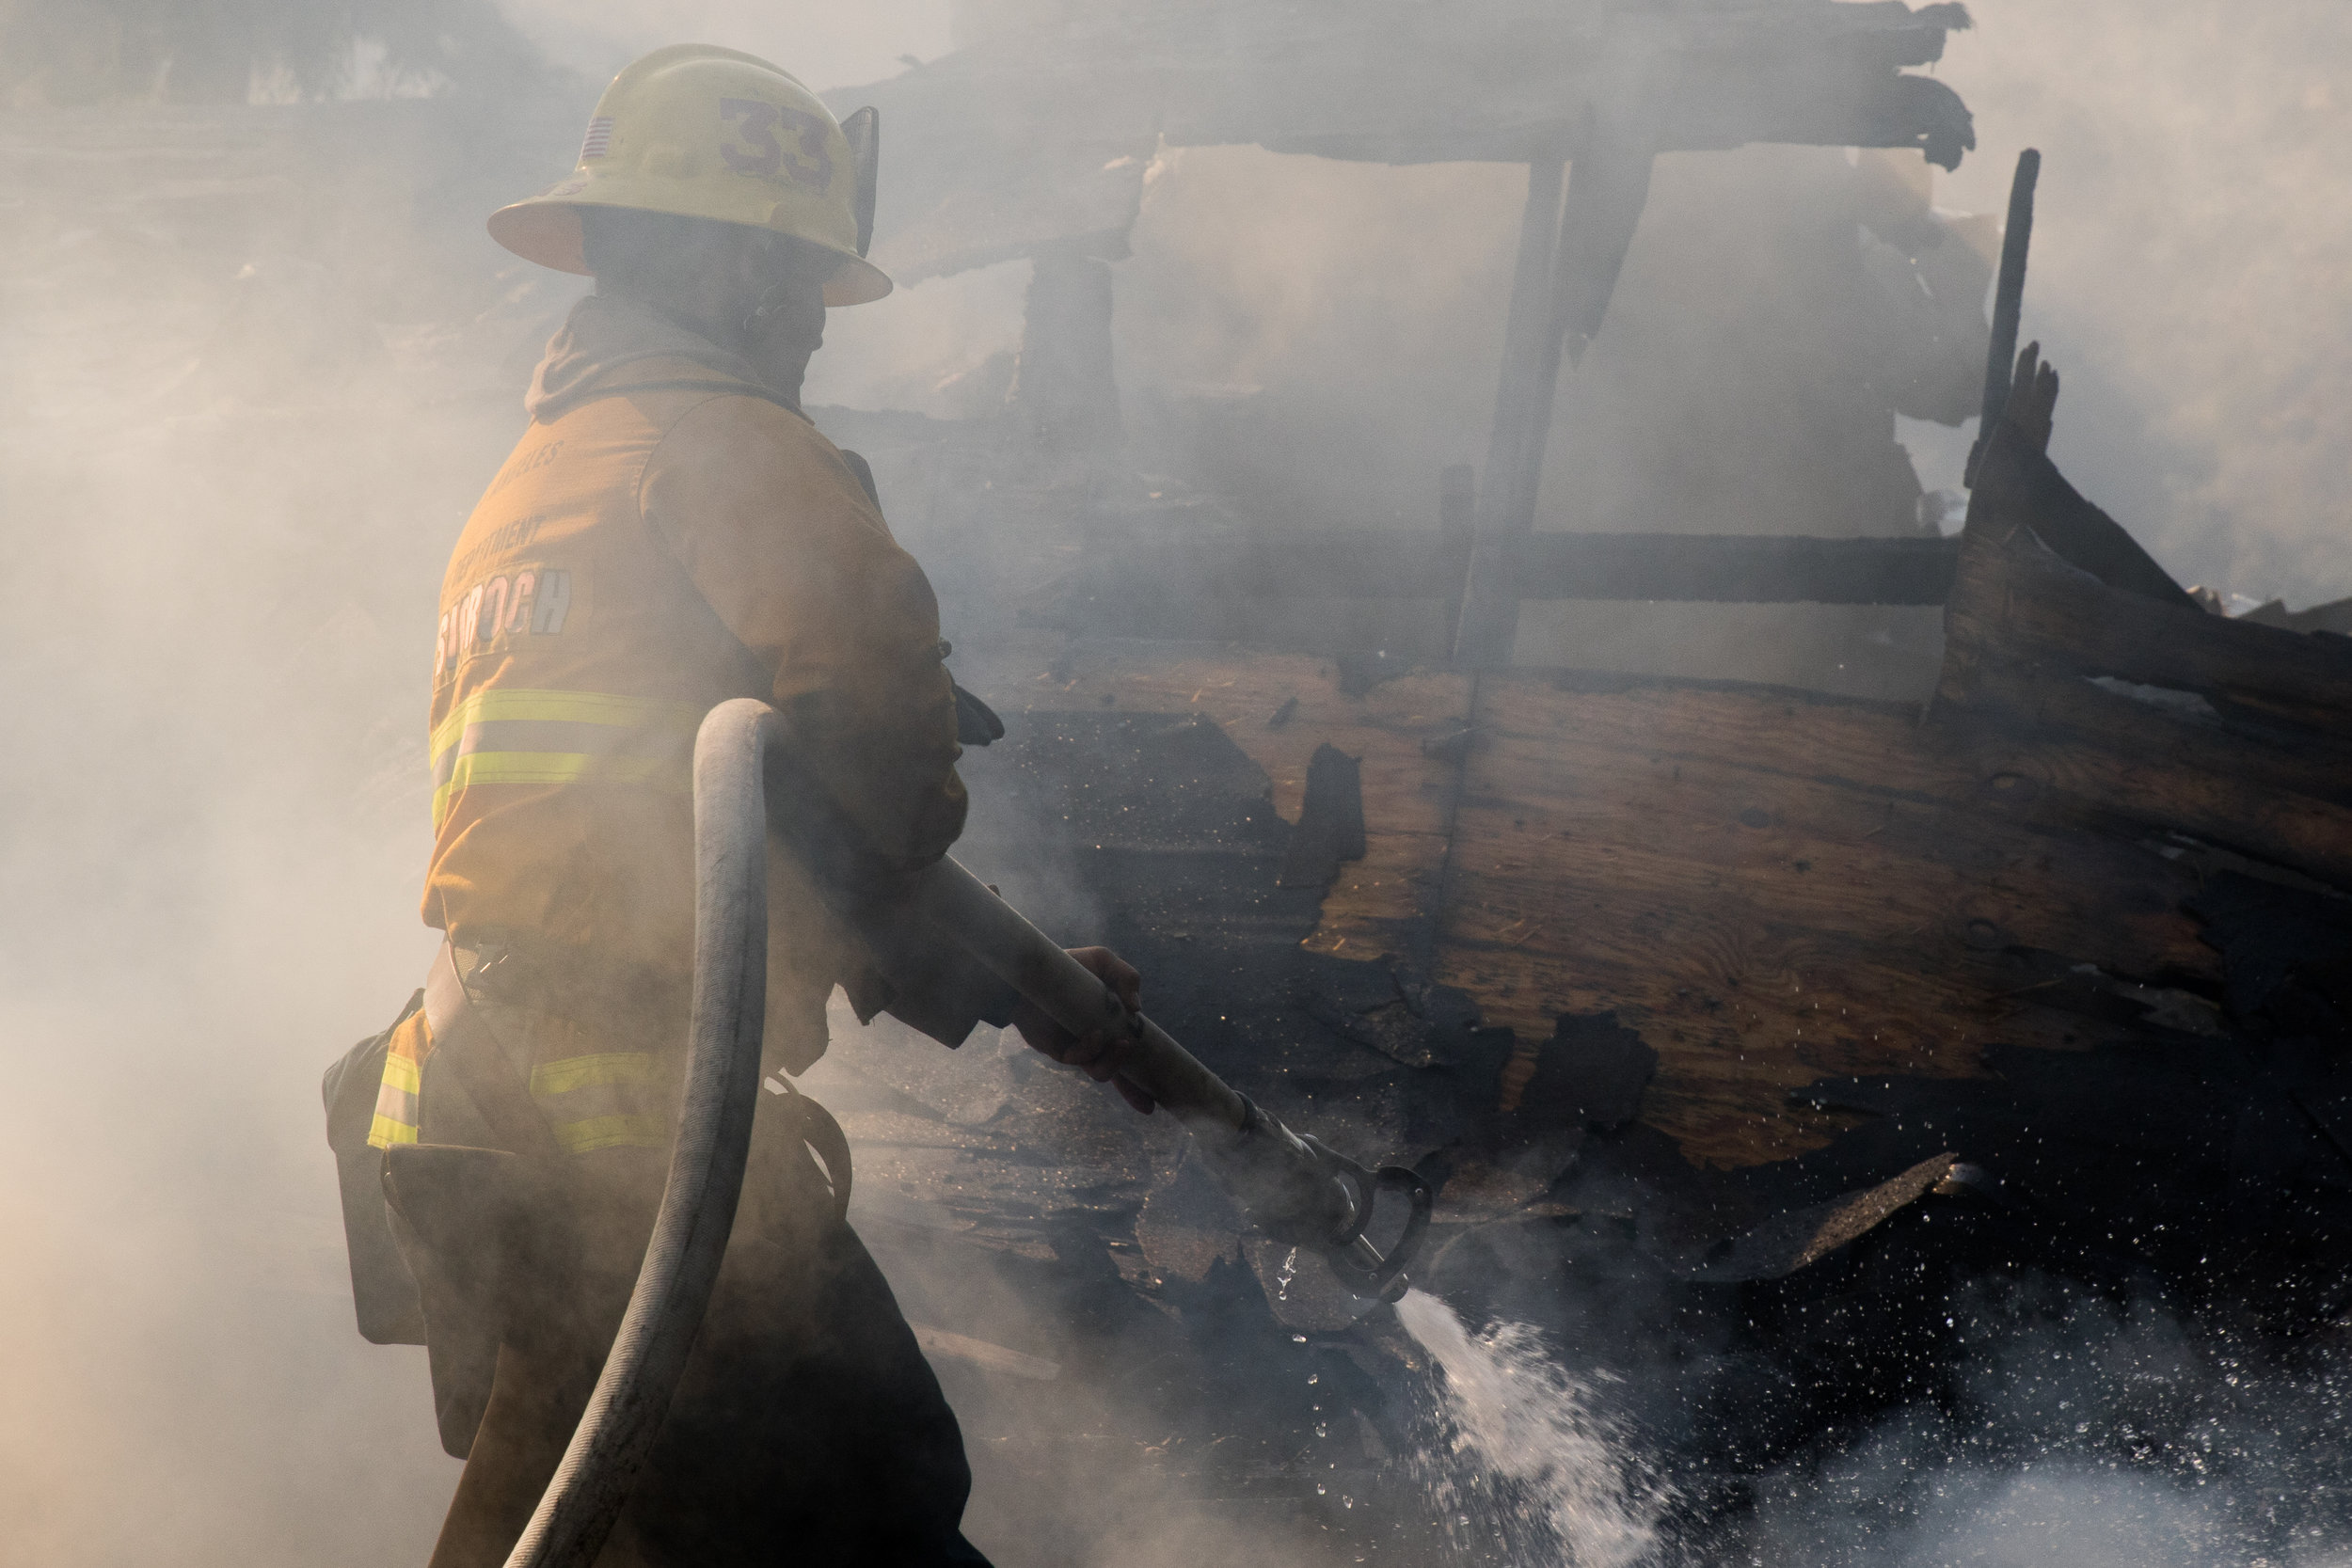 Scott Kwasigroch prepares his hose to battle one of the many house fires that occurred because of the Skirball Fire. The fire burned 450 acres and shut down the 405 freeway on Dec.6, 2017 in West Los Angeles Calif. (Photo by Zane Meyer-Thornton)